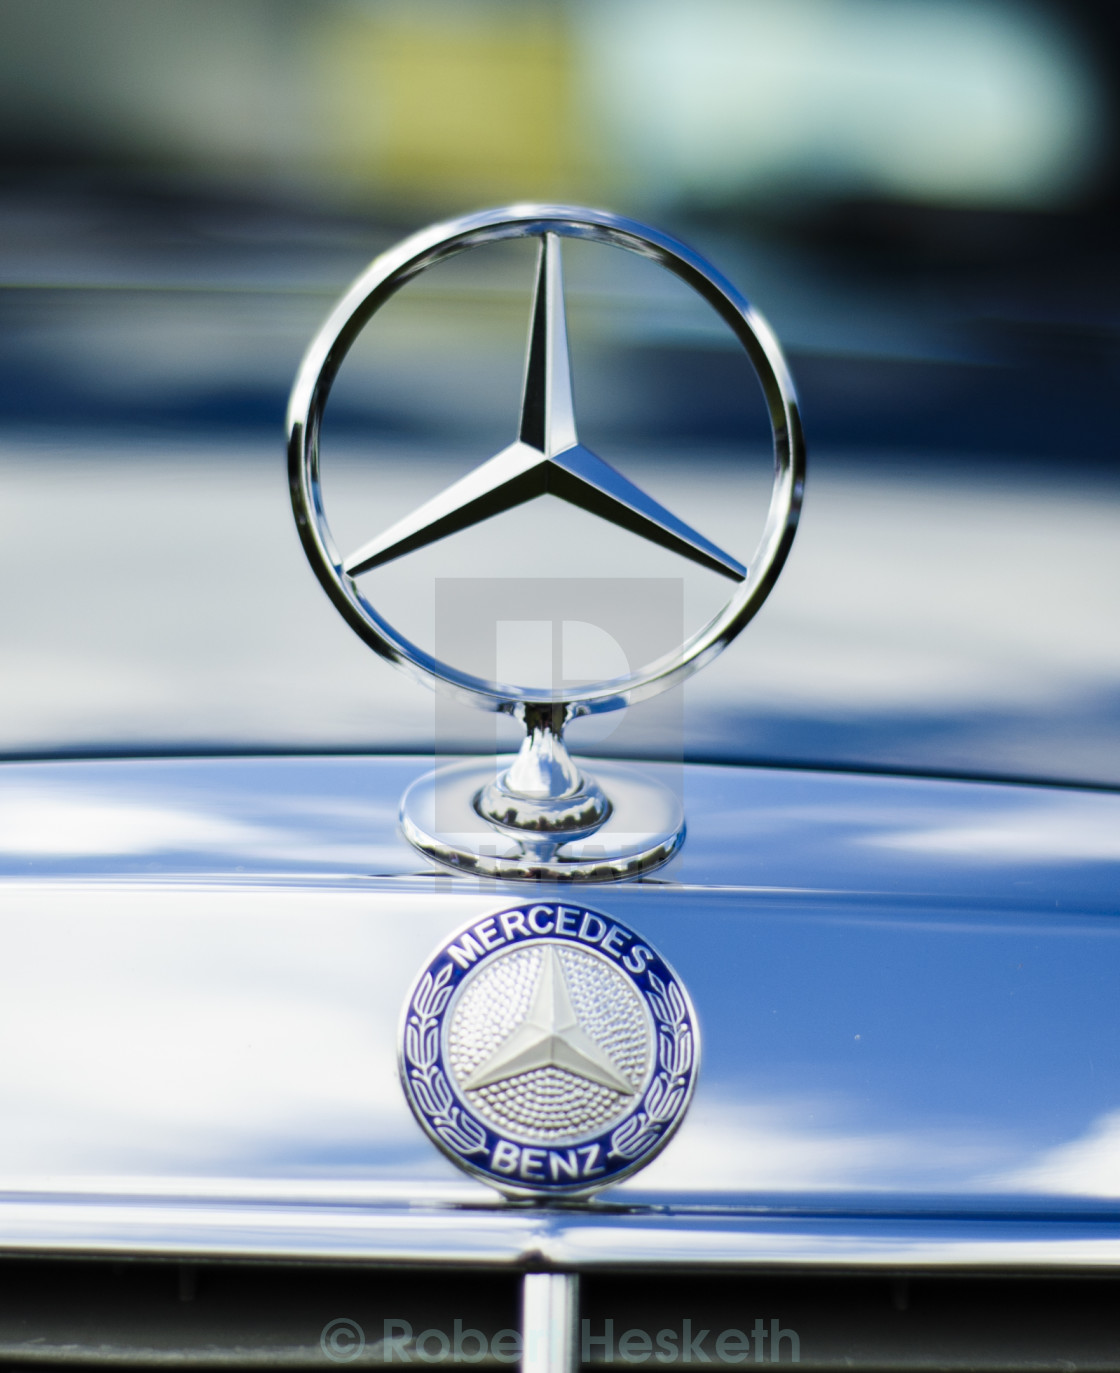 Mercedes Benz Images Picfair Search Results